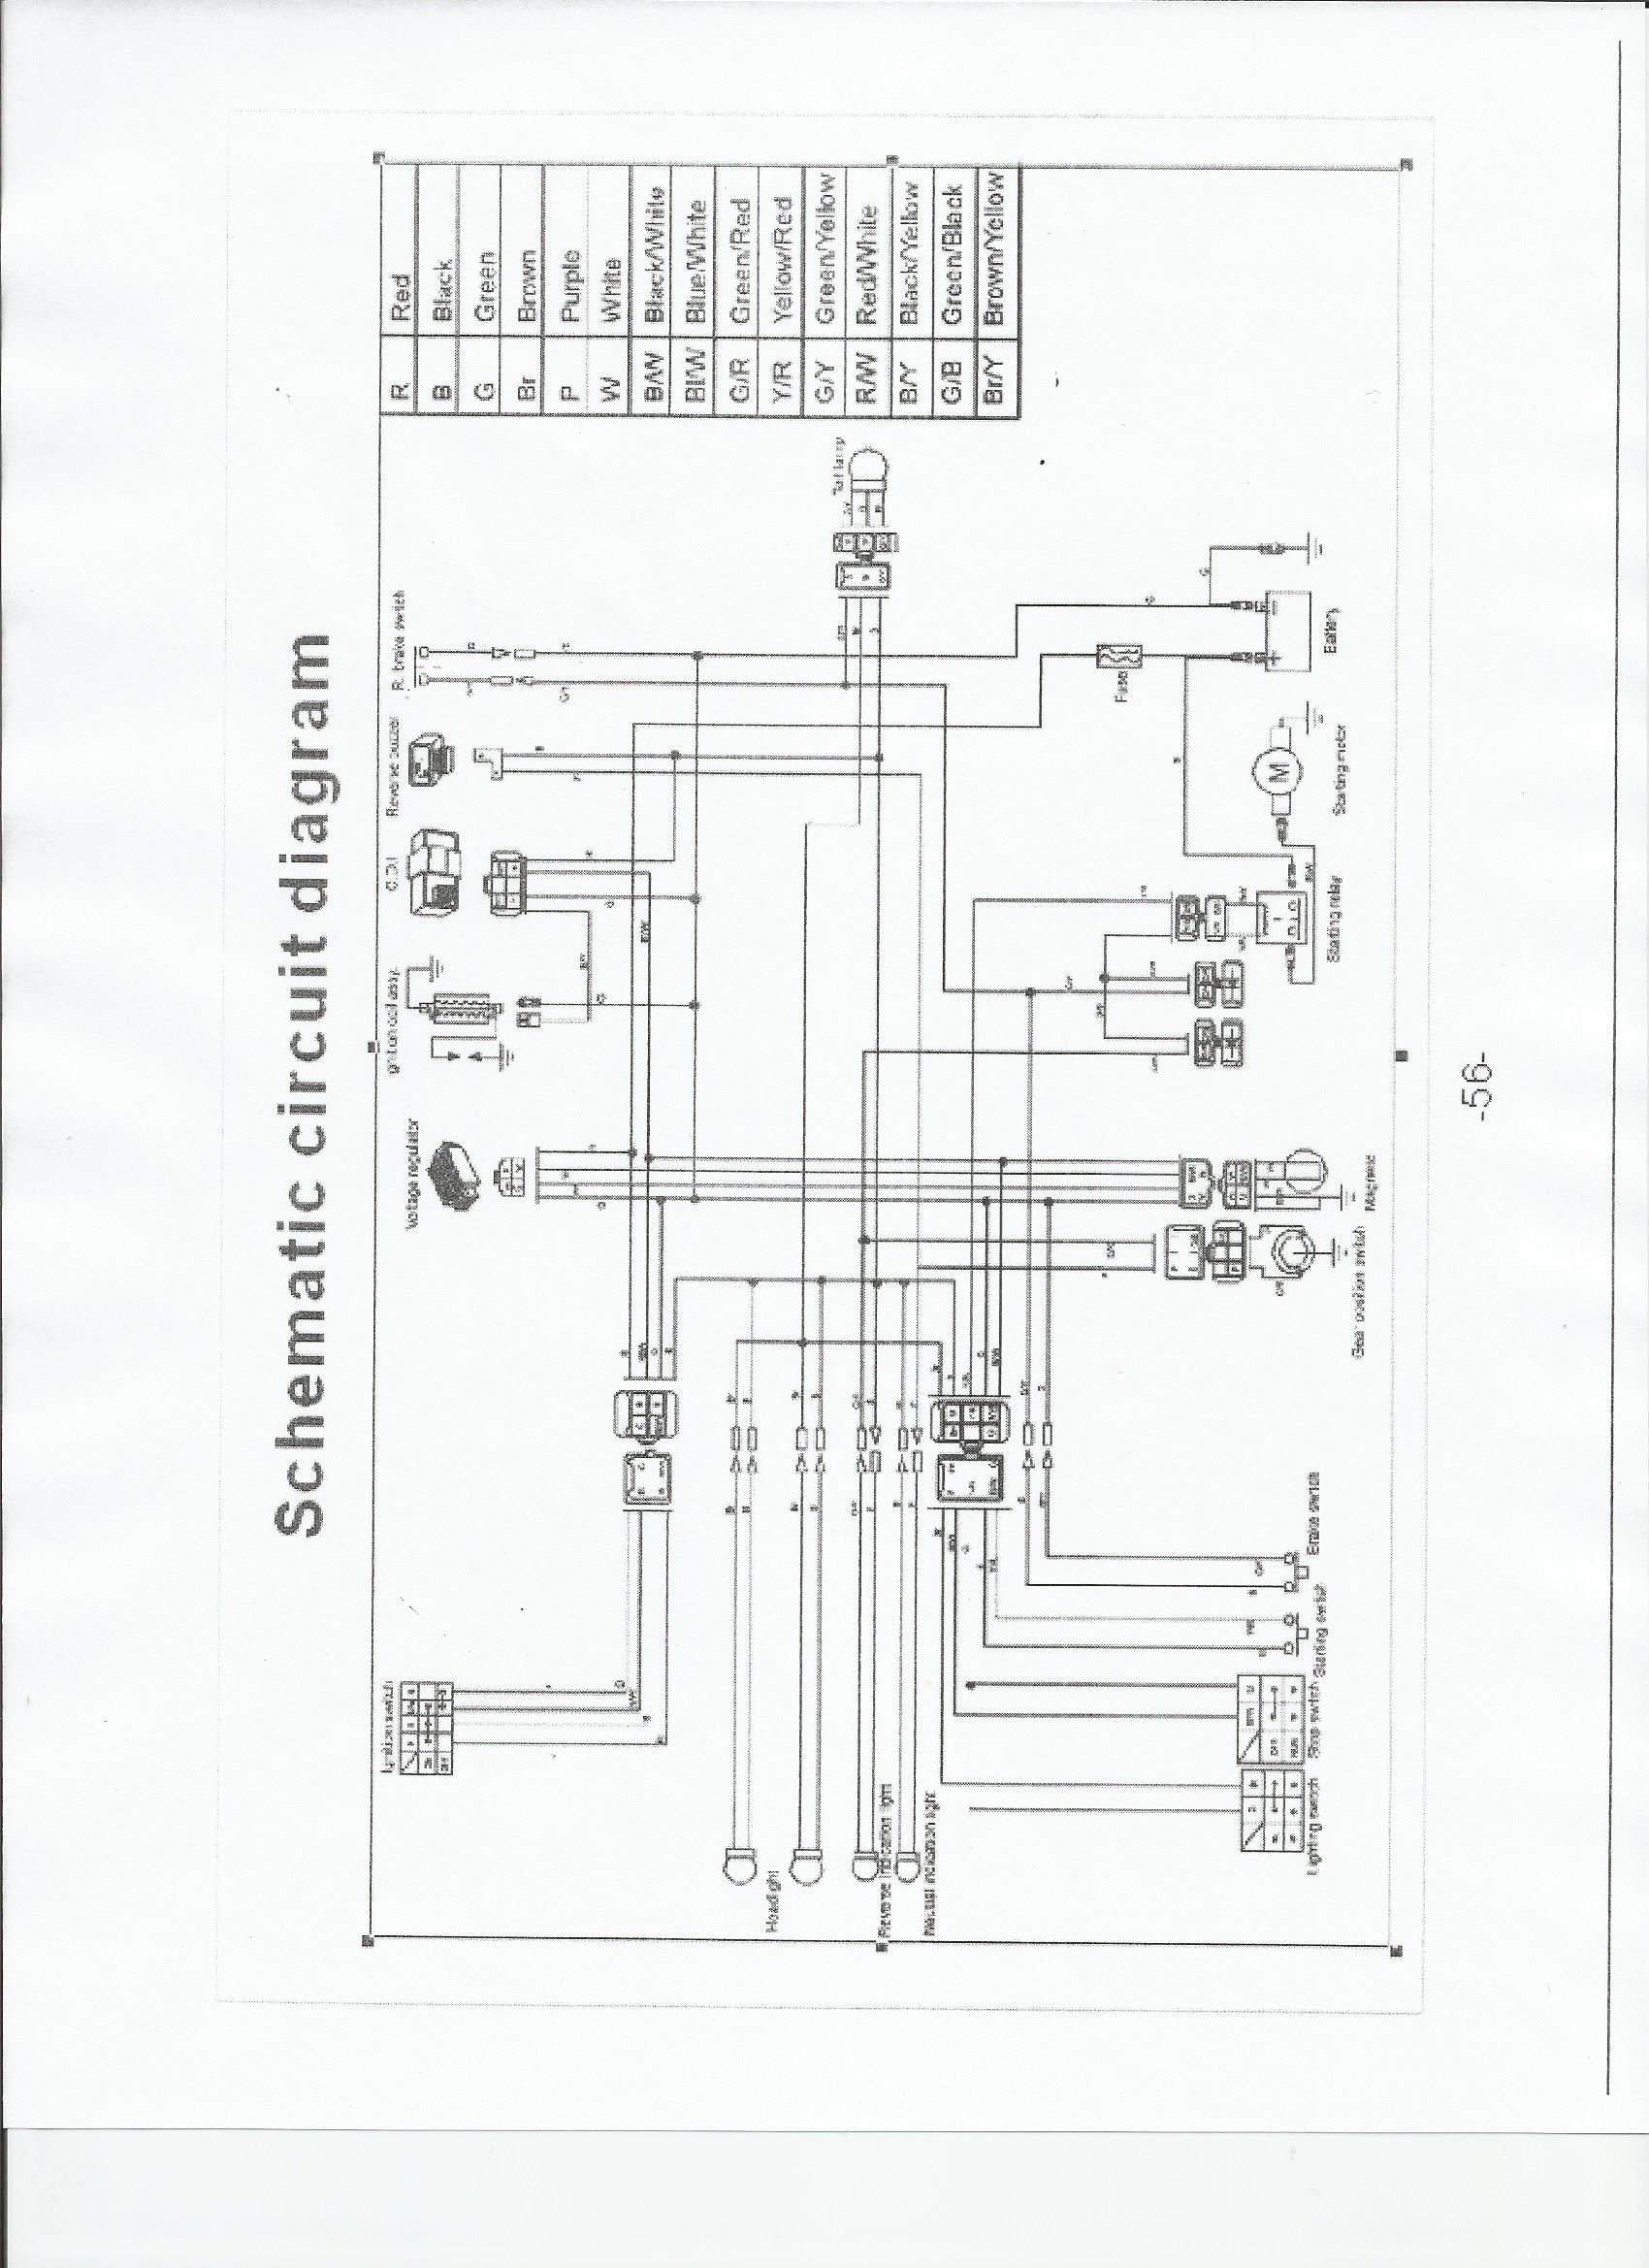 taotao mini and youth atv wiring schematic familygokarts support rh support familygokarts com